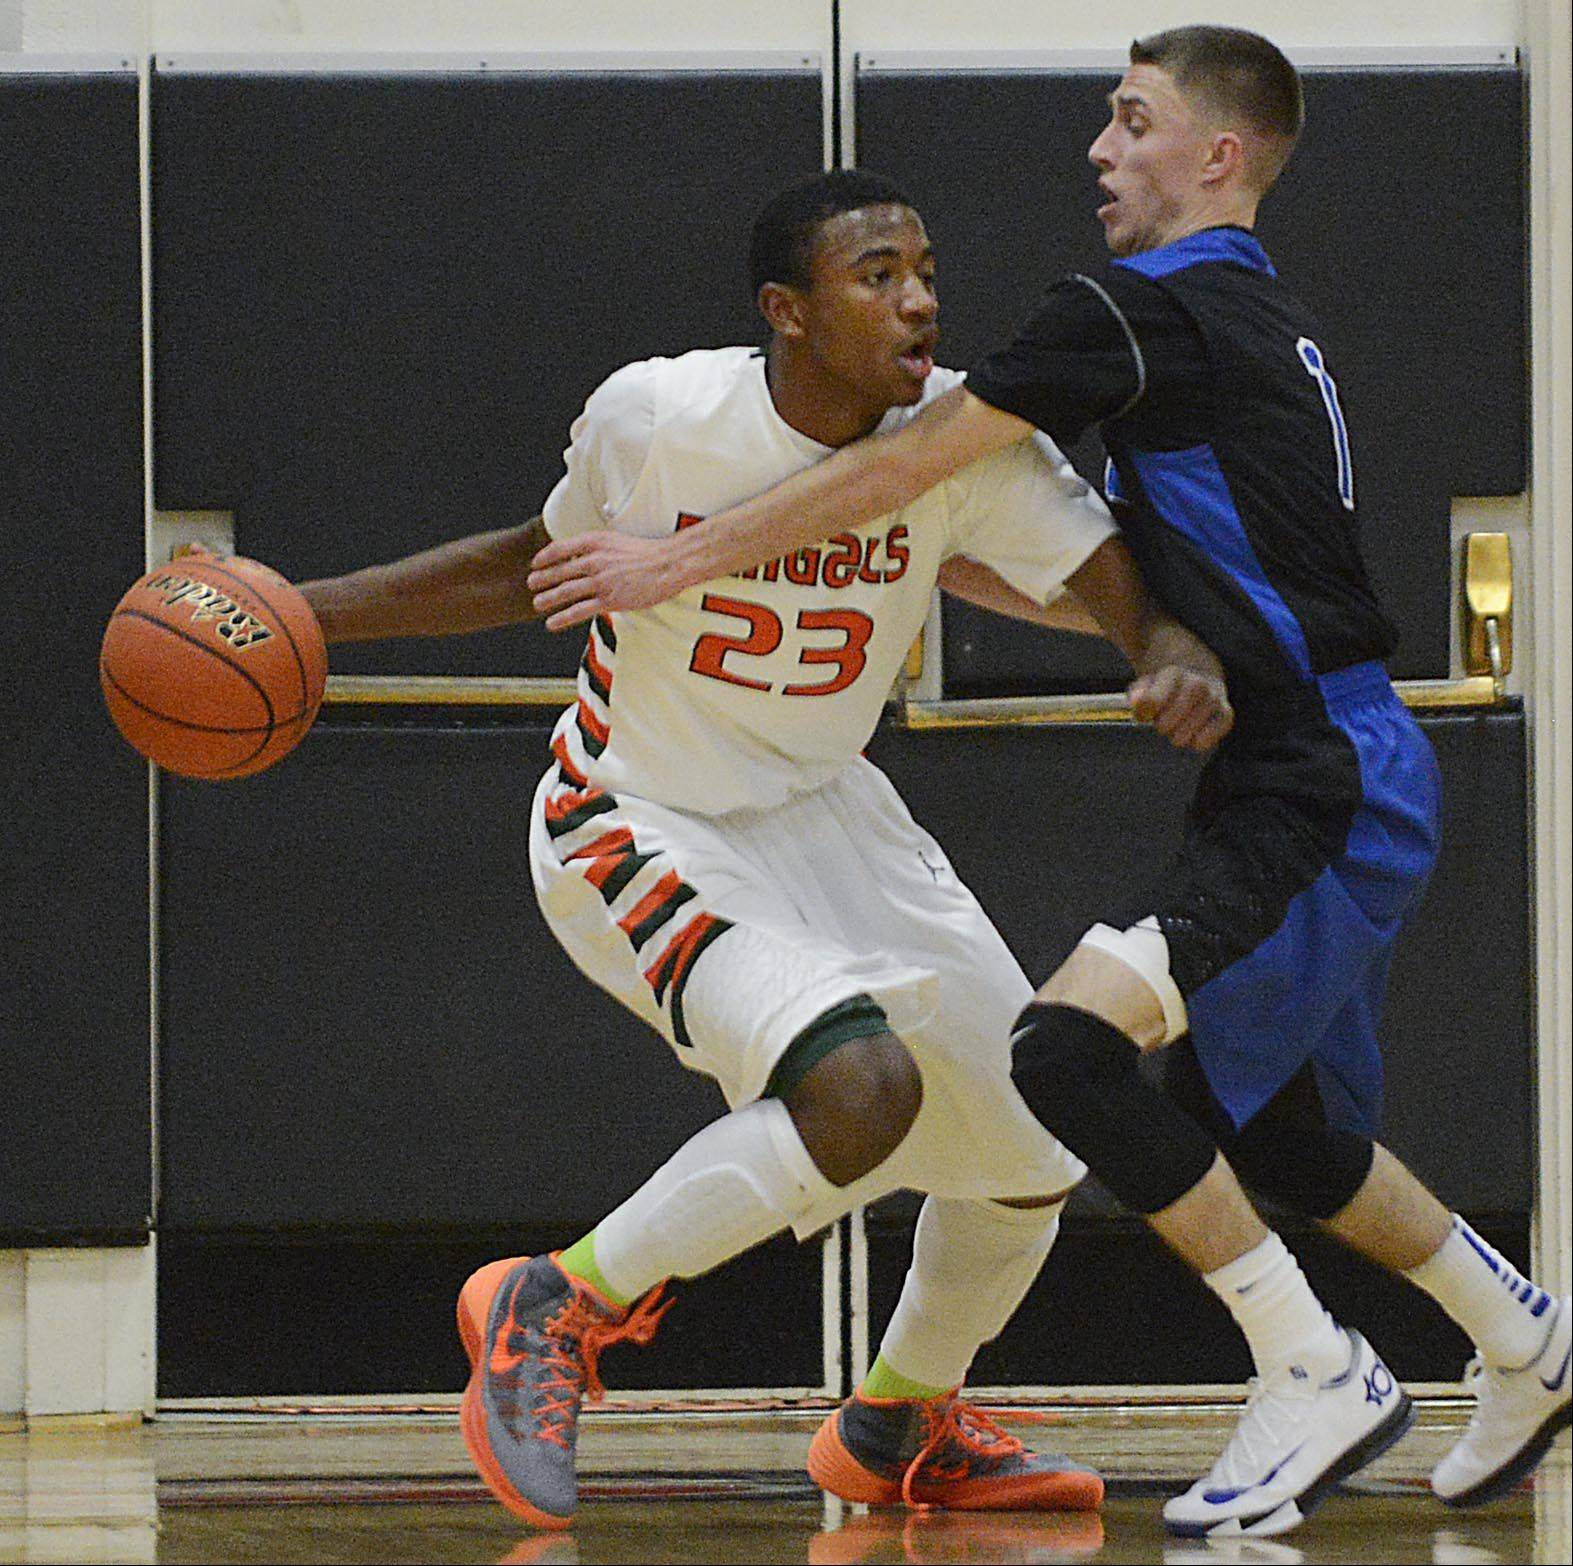 St. Charles North's Alec Goetz guards Plainfield East's Aaron Jordan Tuesday in St. Charles.